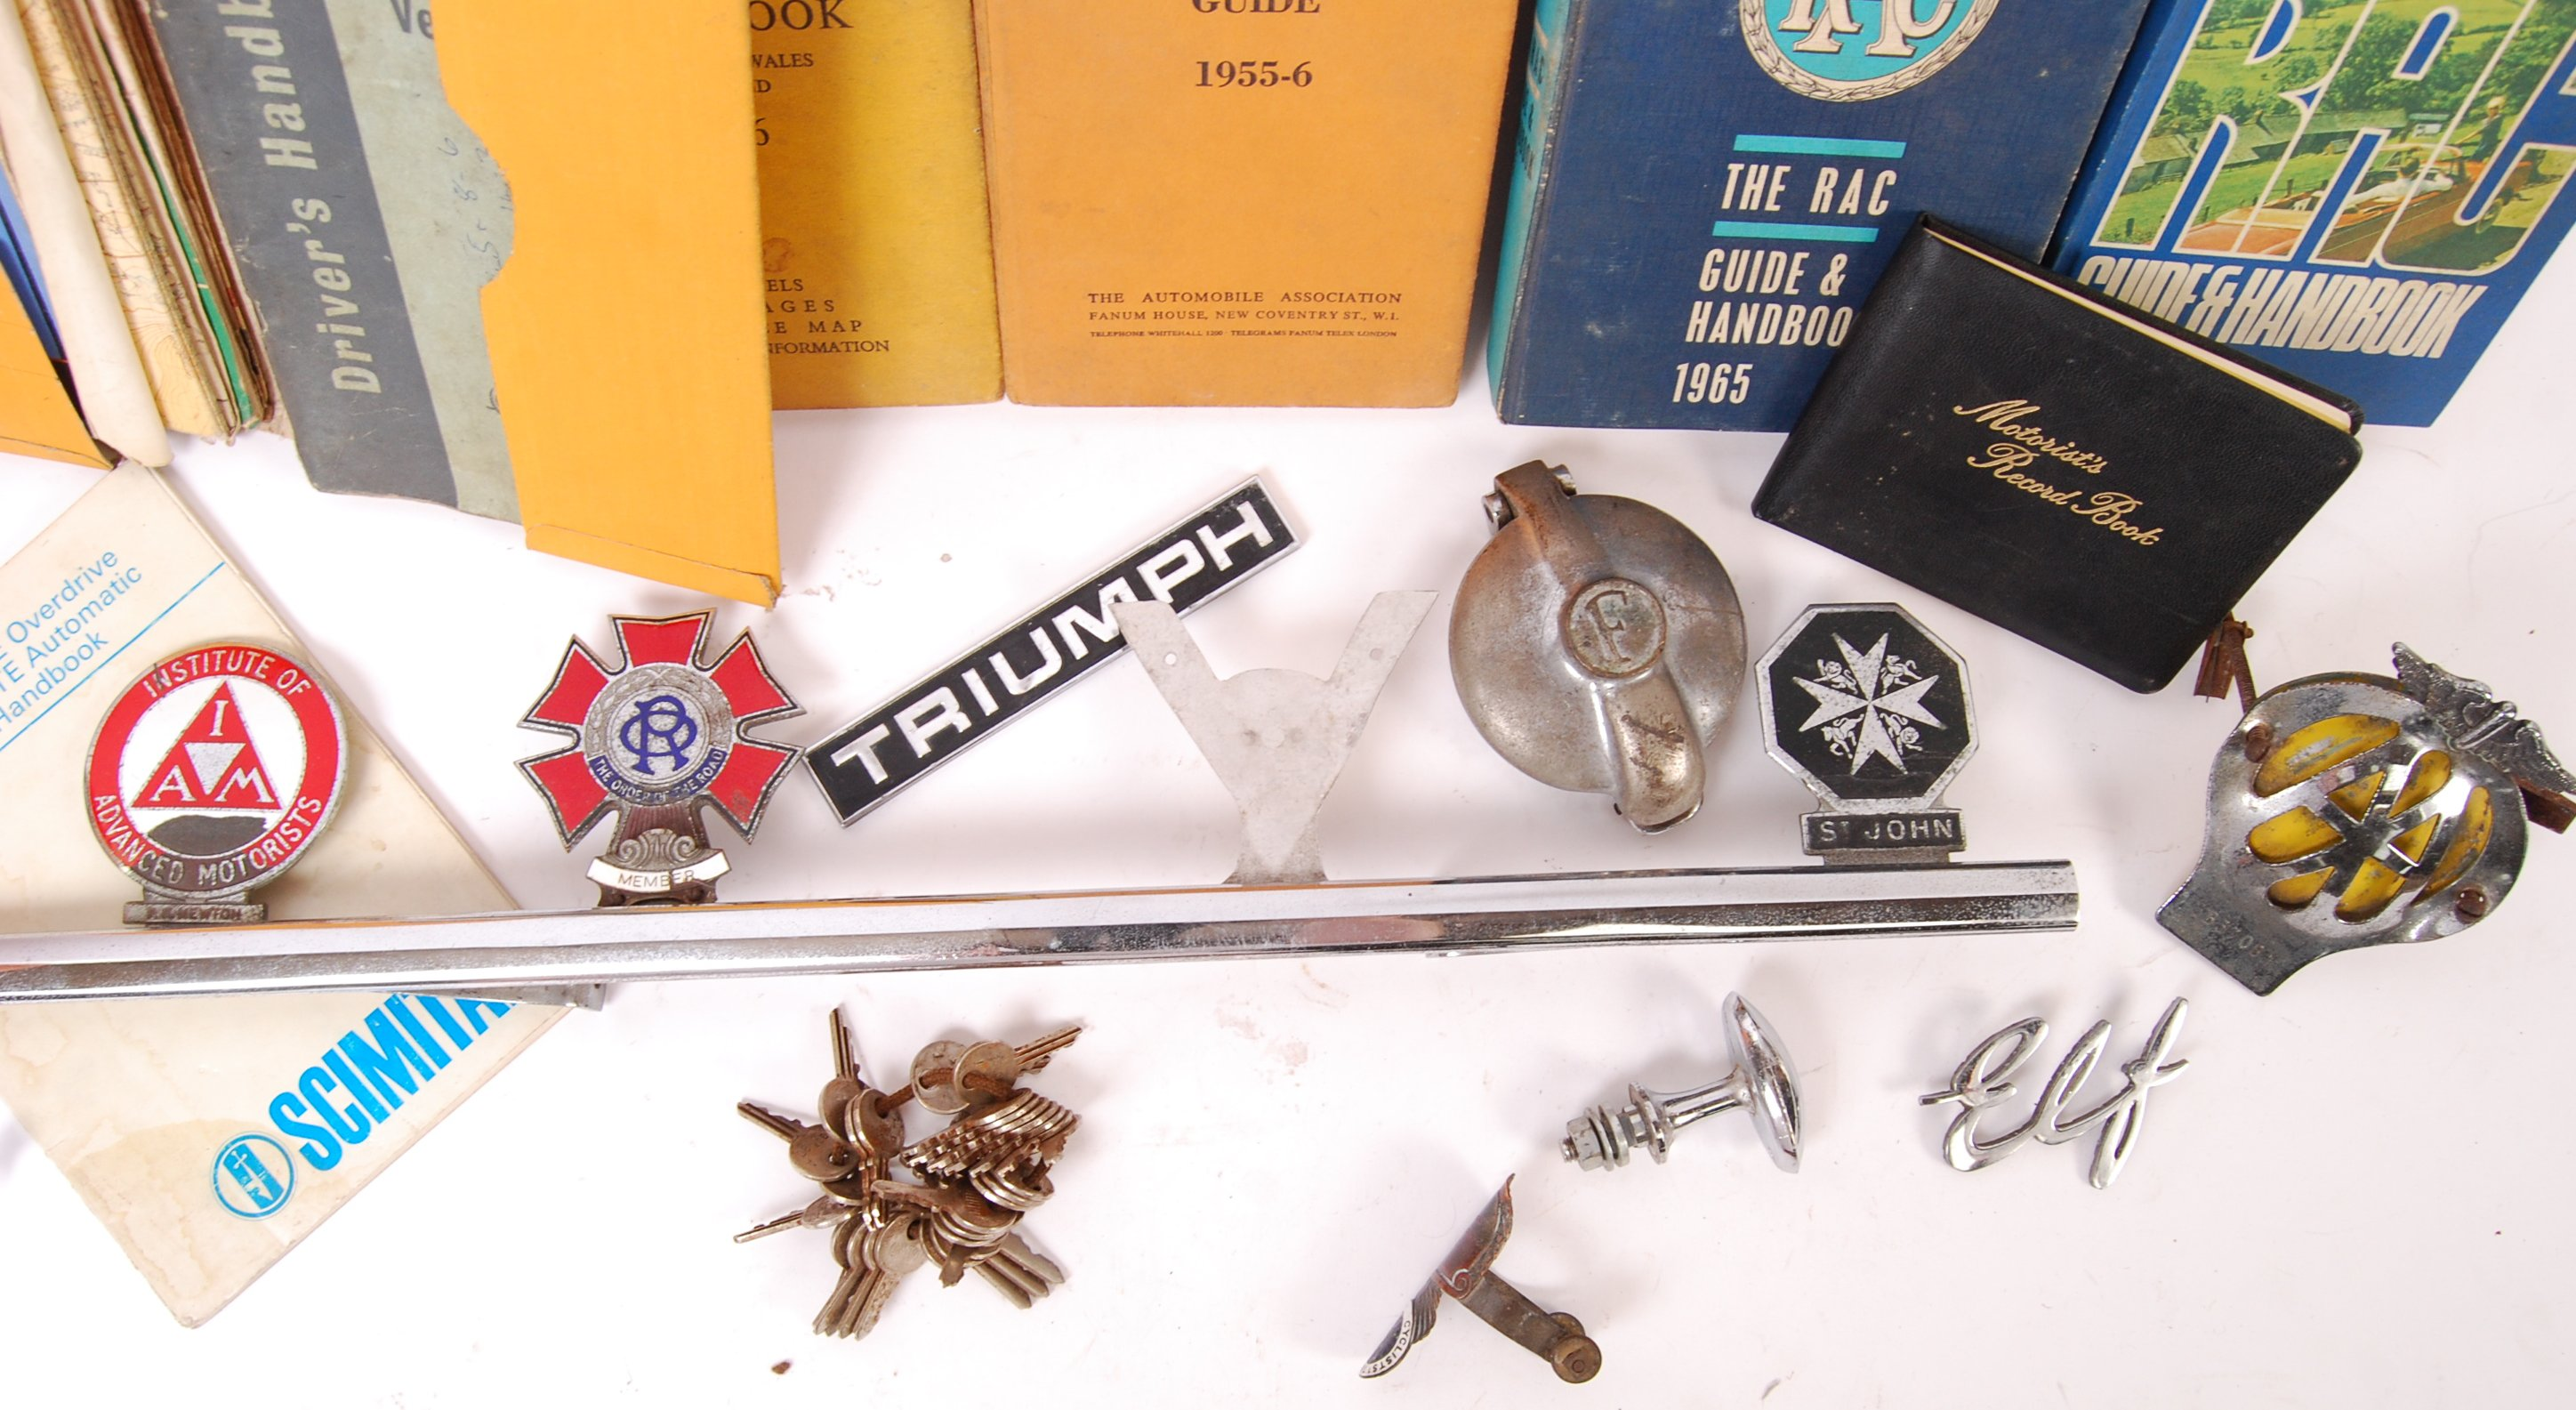 COLLECTION OF ASSORTED 1950'S MOTORING RELATED ITEMS - Image 2 of 3